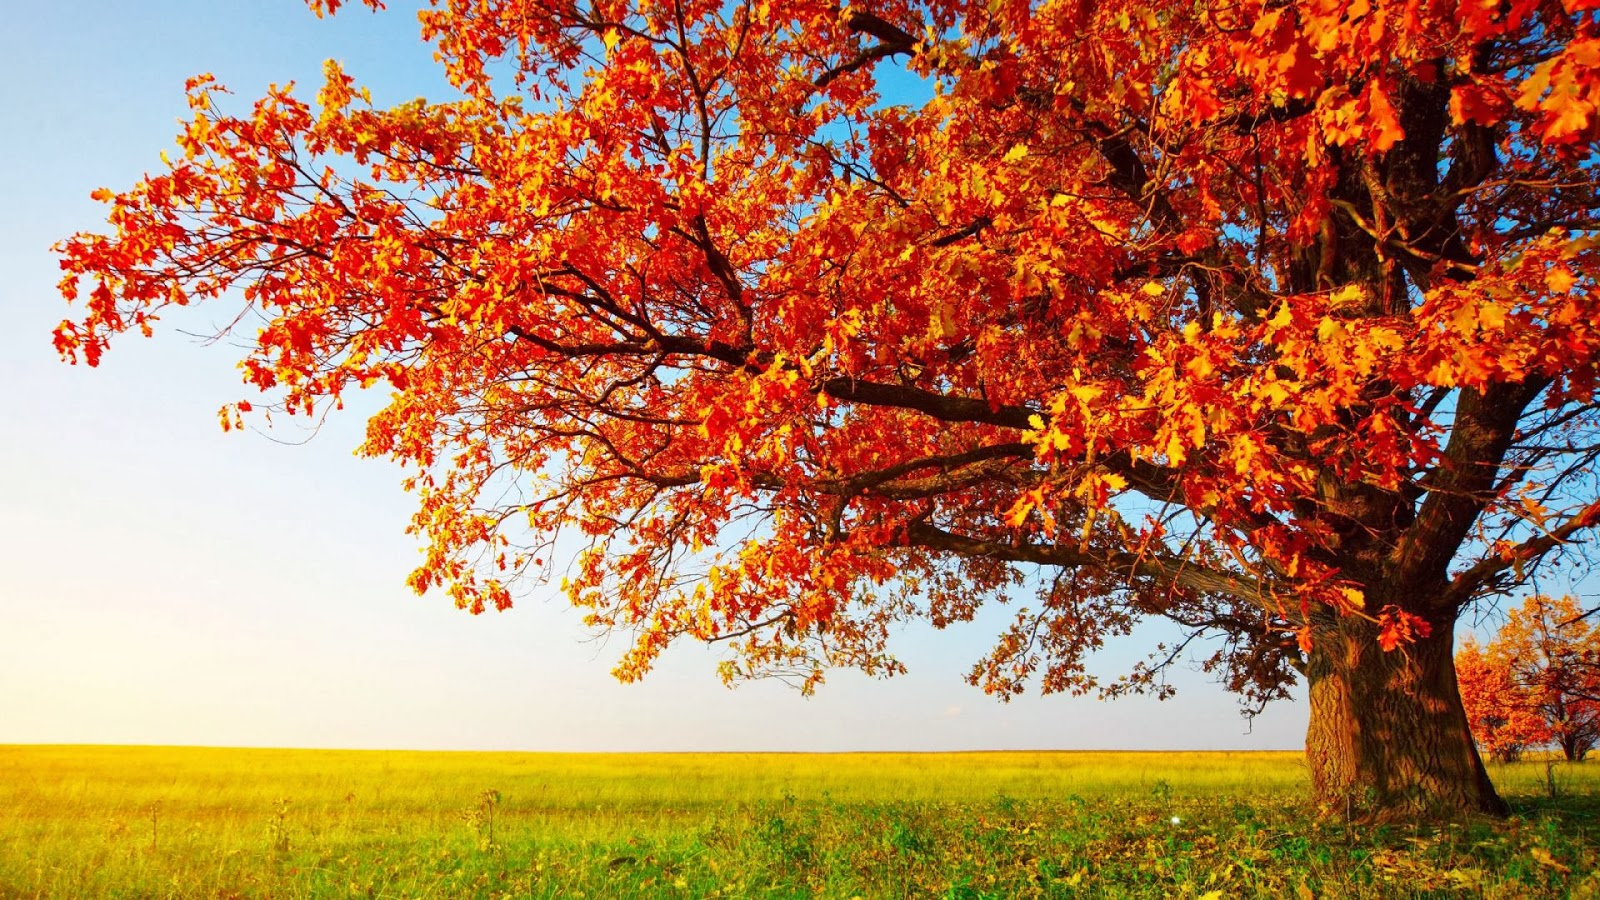 HD Wallpapers 1080p Nature autumn - Mobile wallpapers